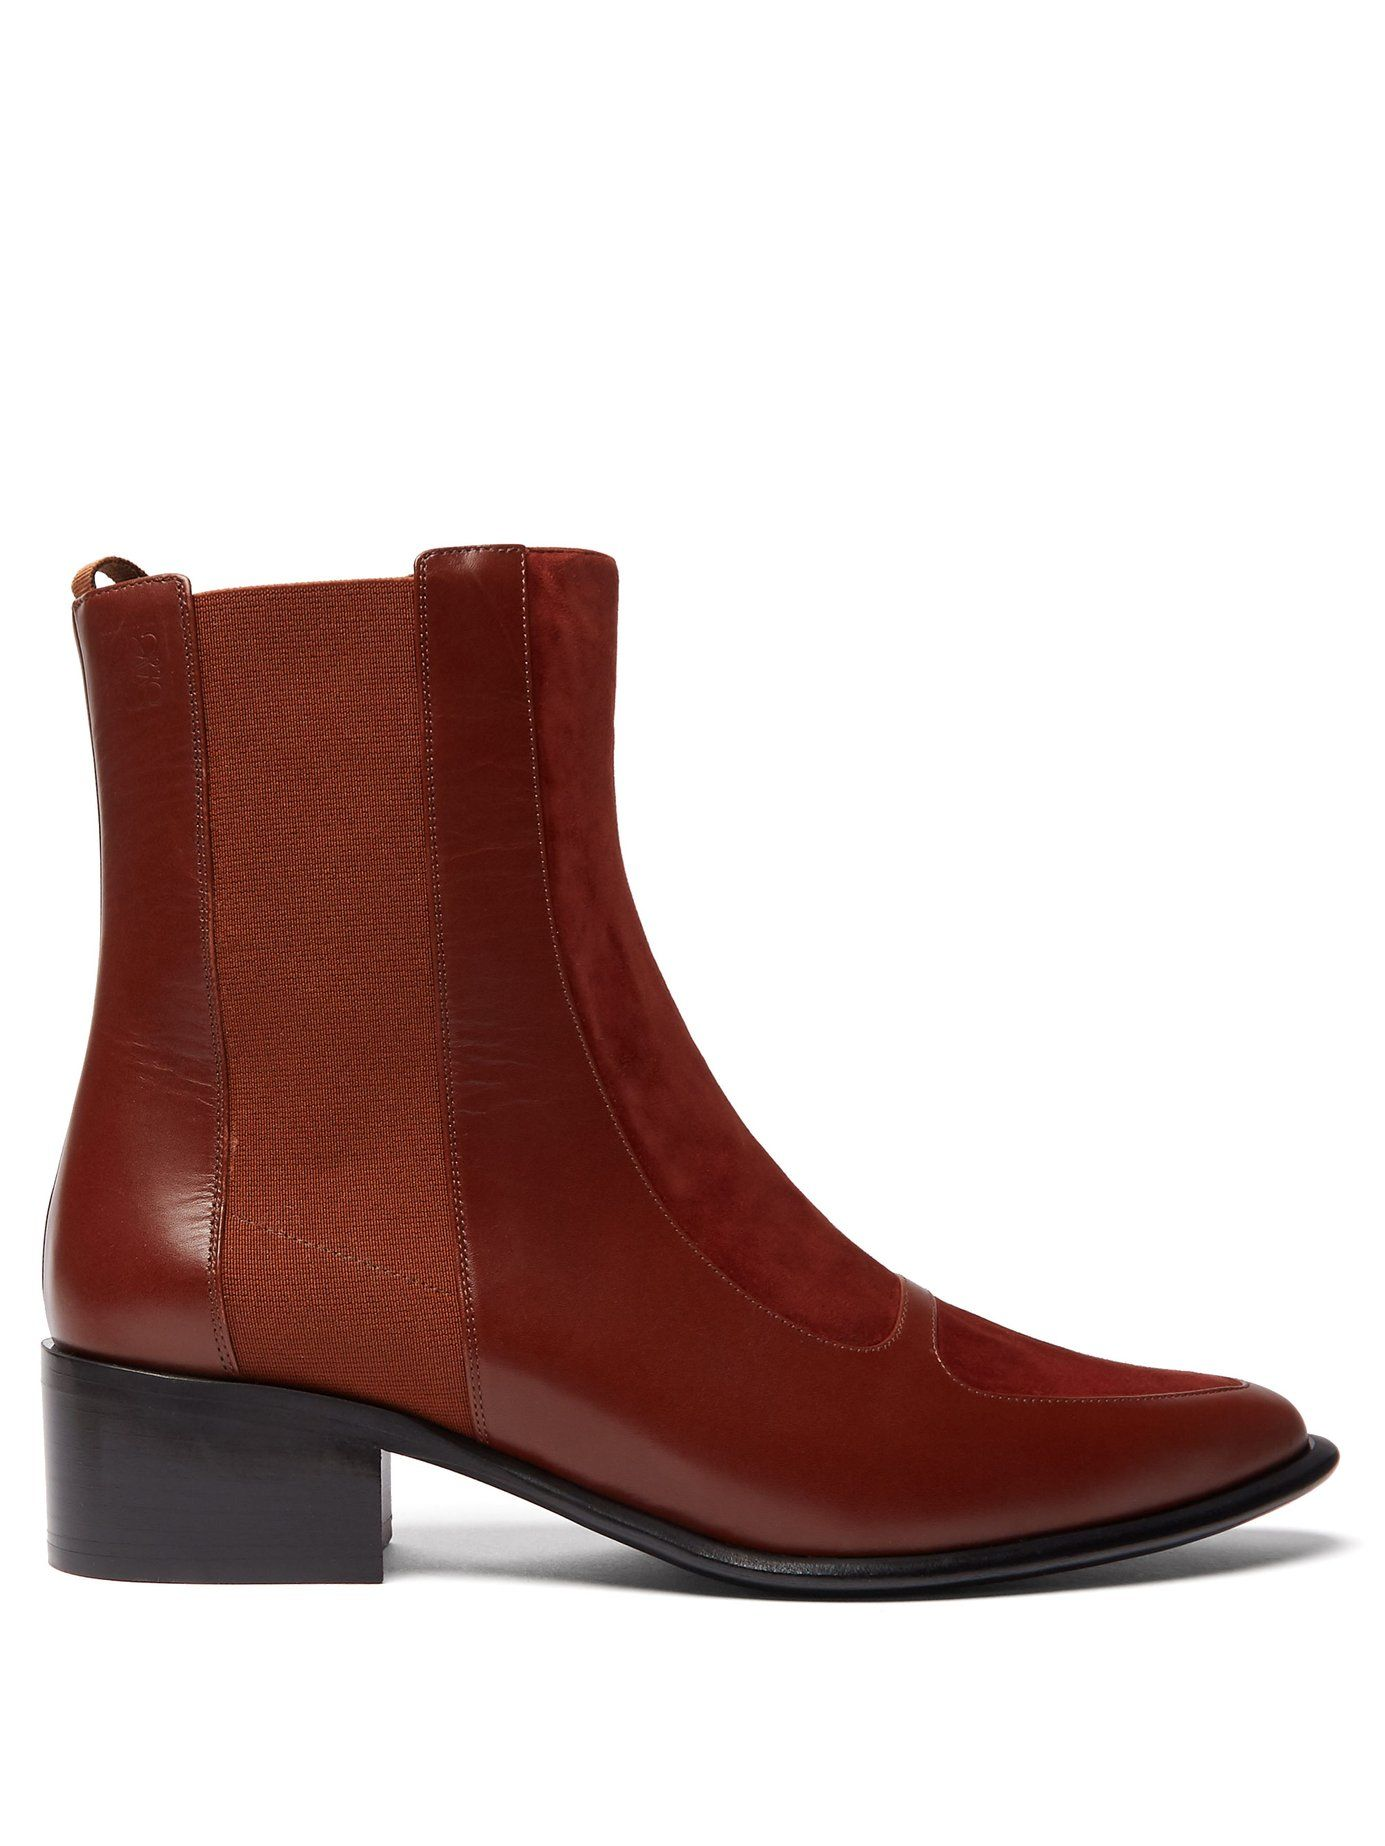 8433da4df LOEWE POINT-TOE SUEDE AND LEATHER CHELSEA BOOTS